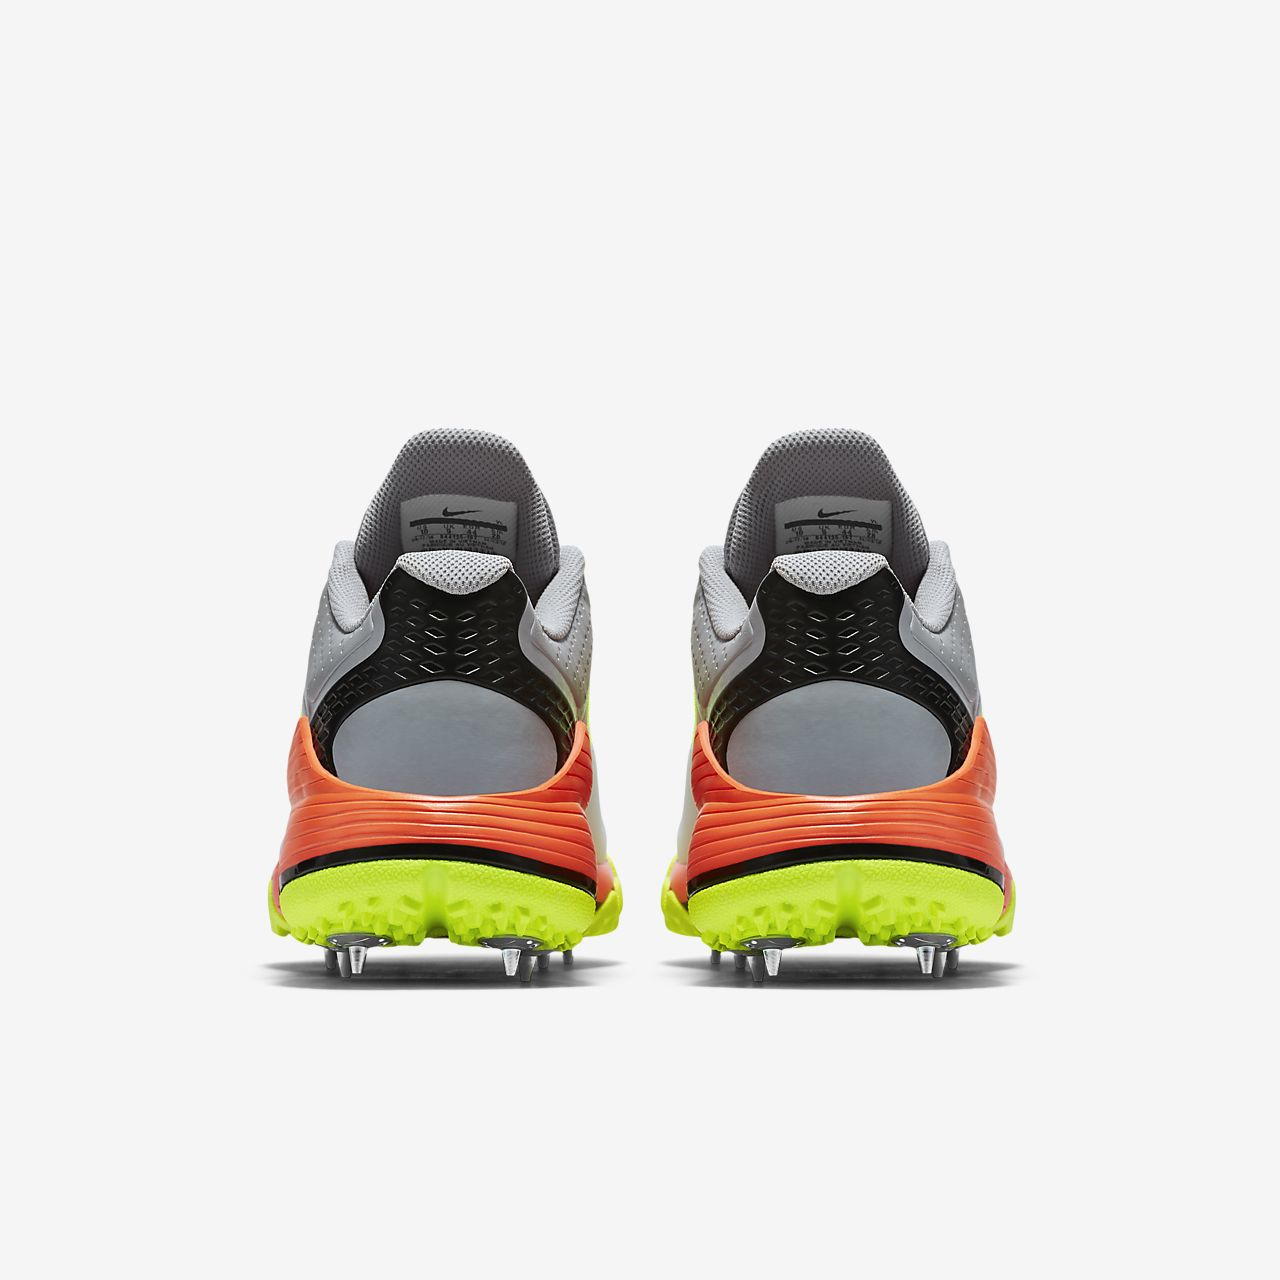 timeless design 1d9cd 73c71 ... Image result for nike domain 2 cricket spikes shoes